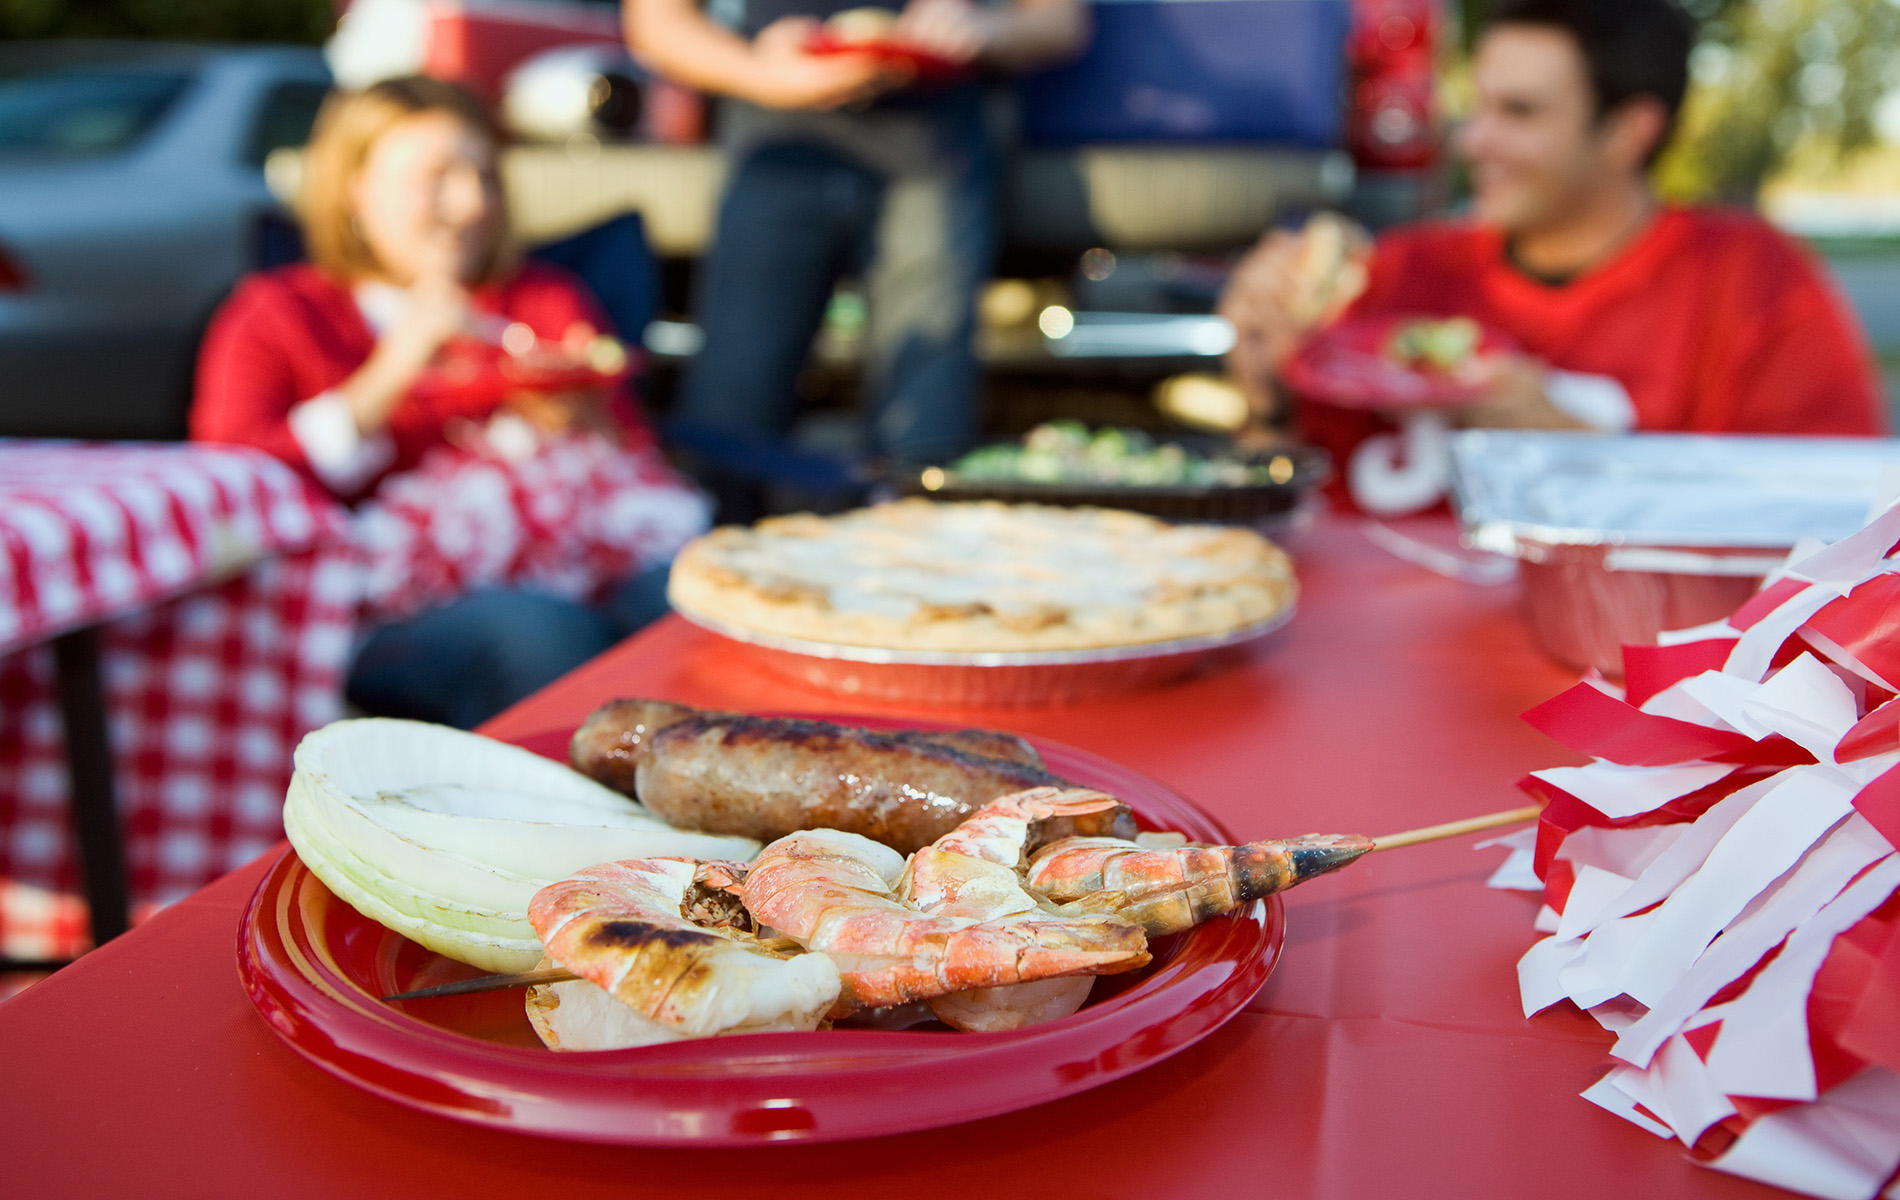 shrimp and meat on platter at tailgate event